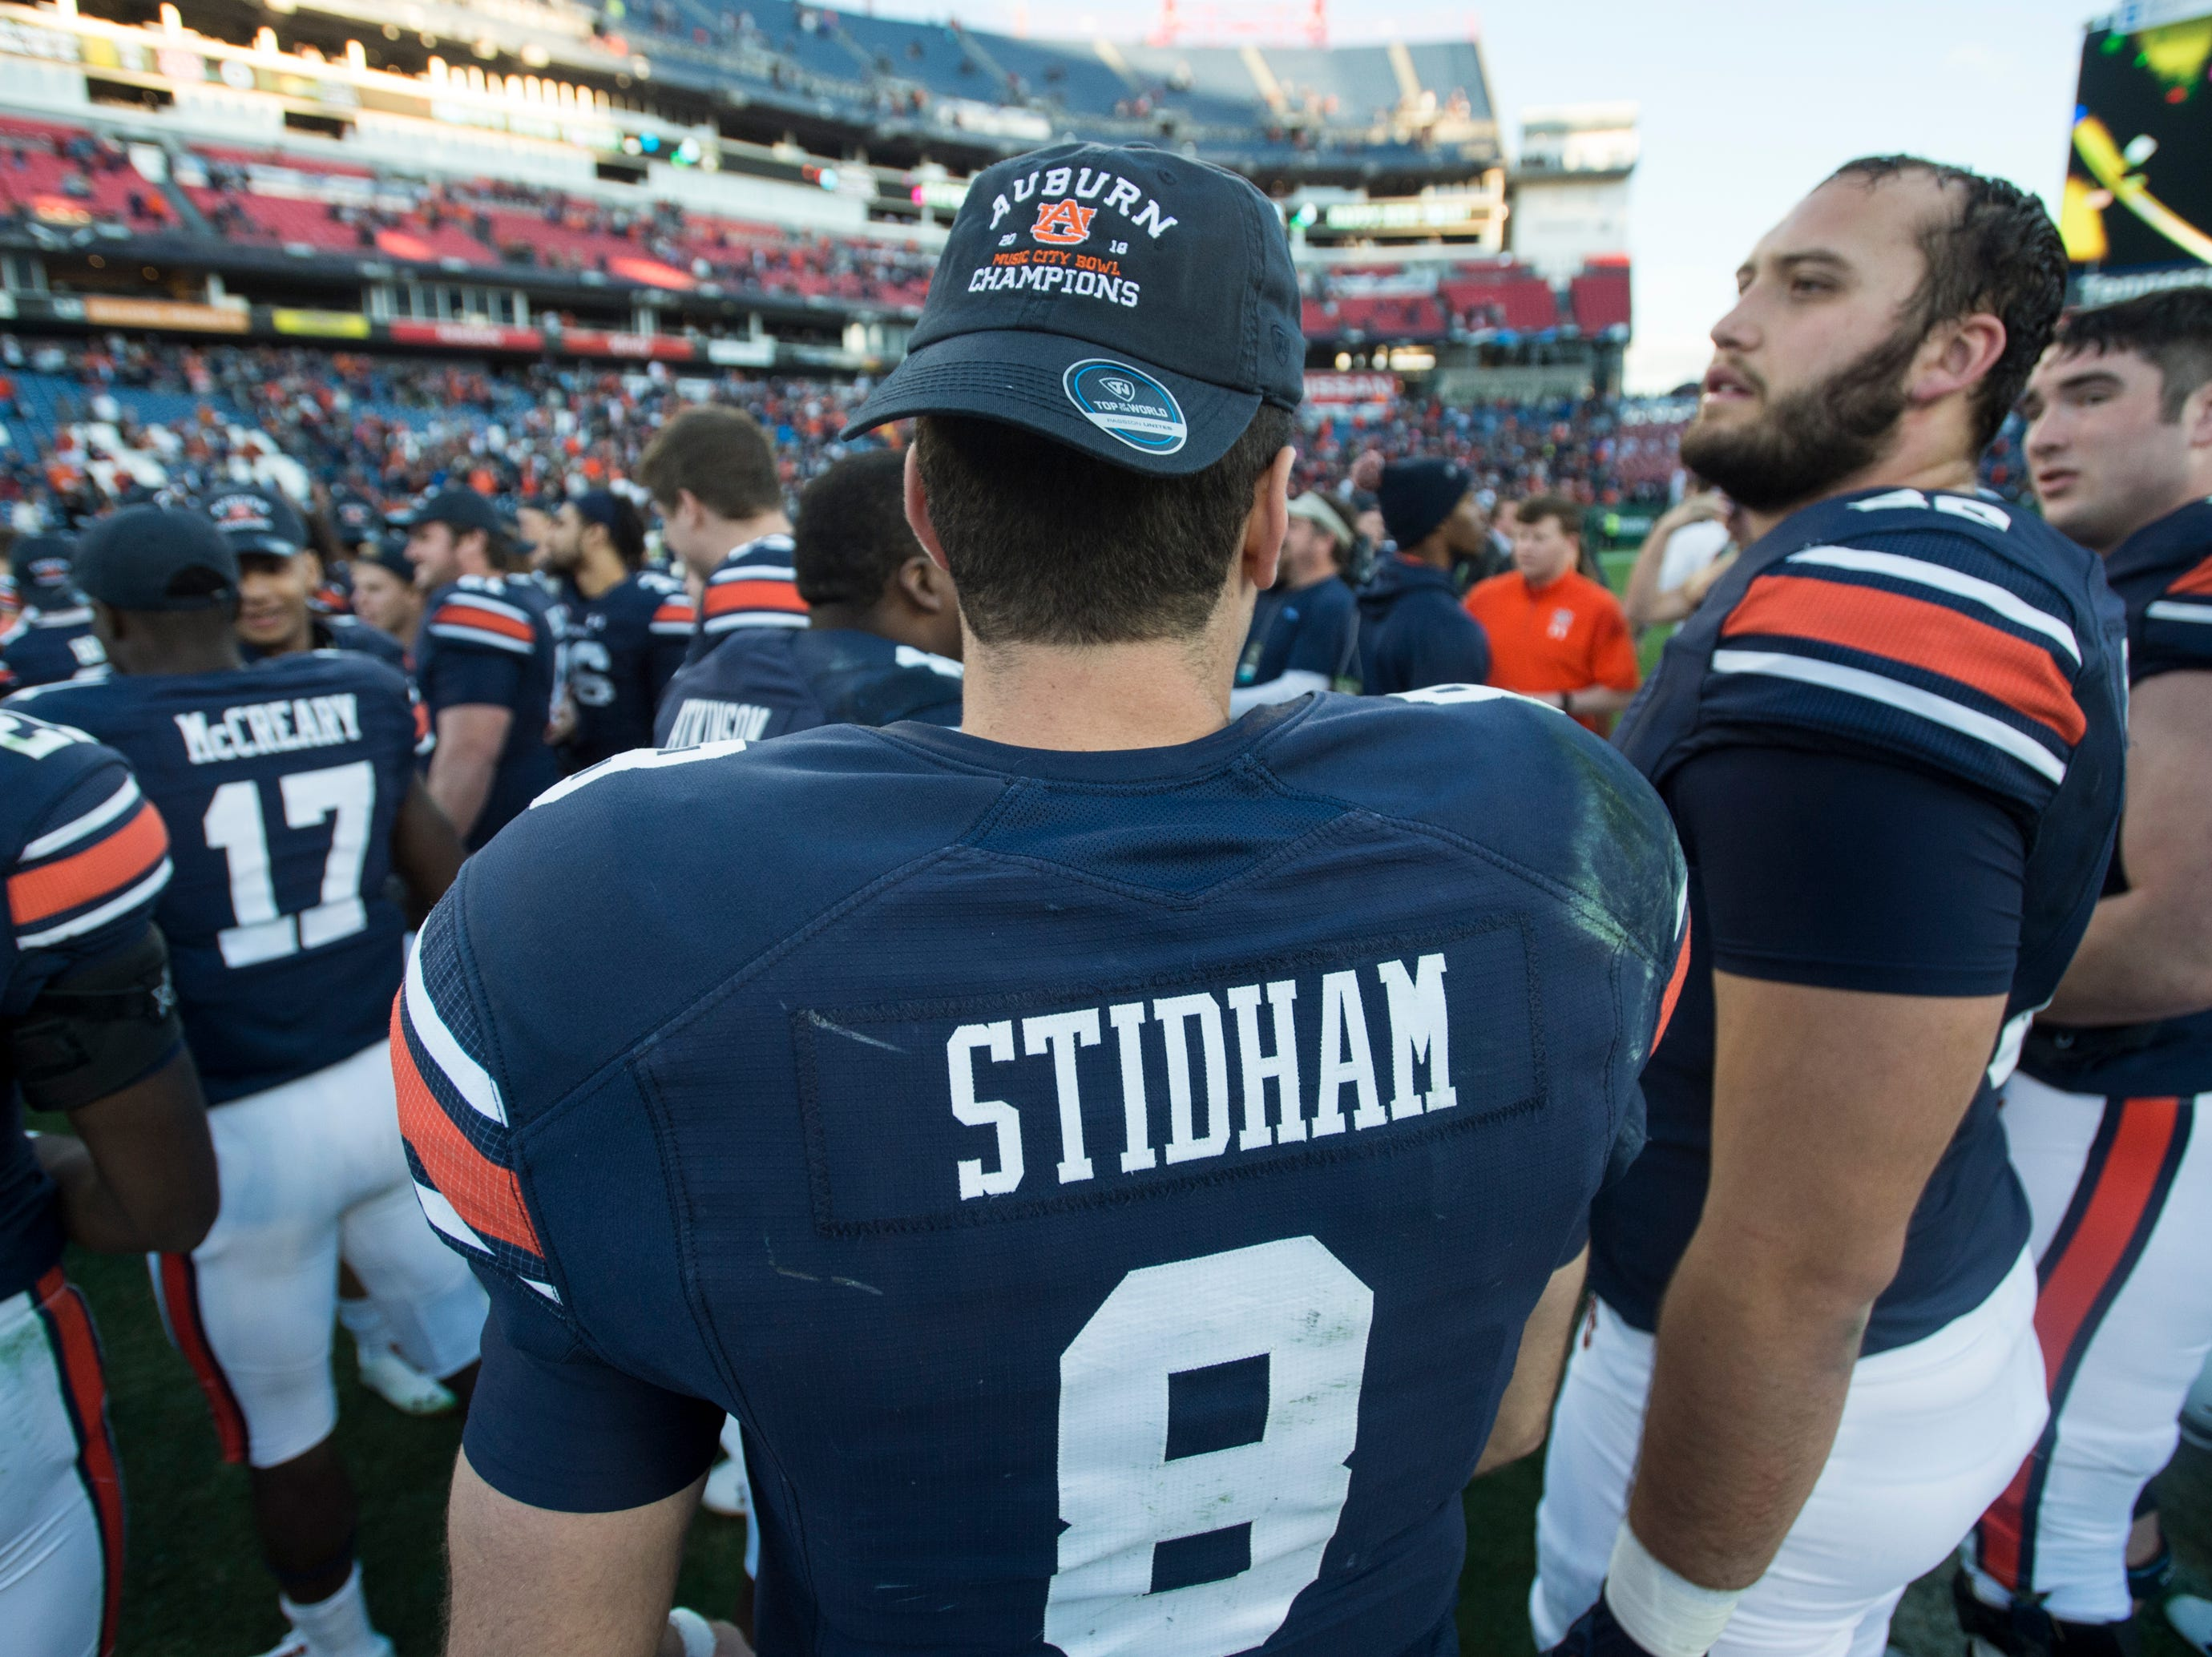 Auburn quarterback Jarrett Stidham (8) wears the champions hat after the Music City Bowl at Nissan Stadium in Nashville, Tenn., on Friday, Dec. 28, 2018. Auburn defeated Purdue 63-14.